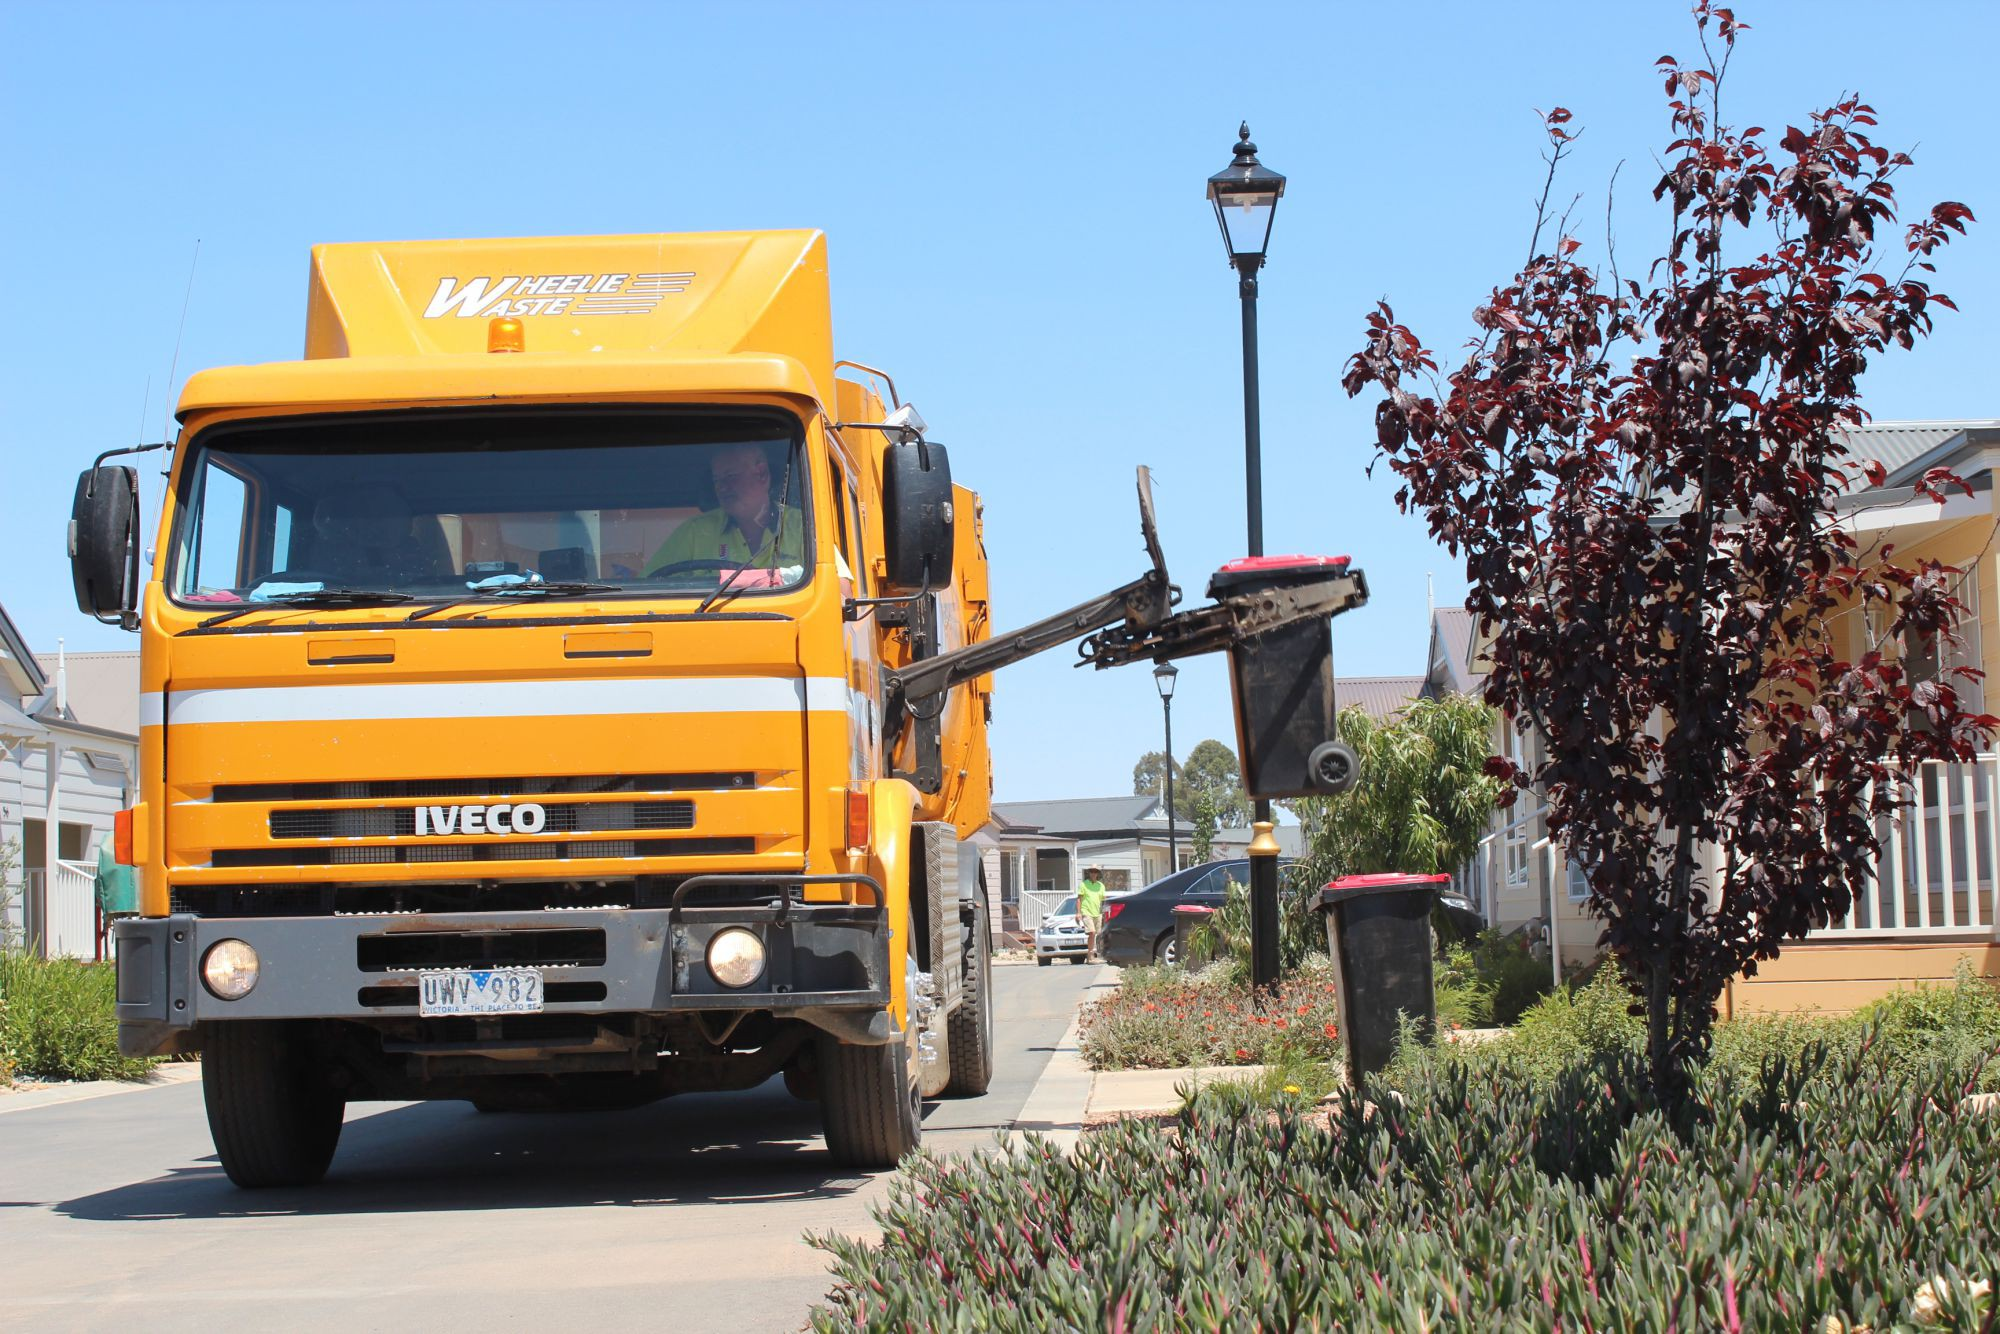 Kerbside waste collection to continue as normal